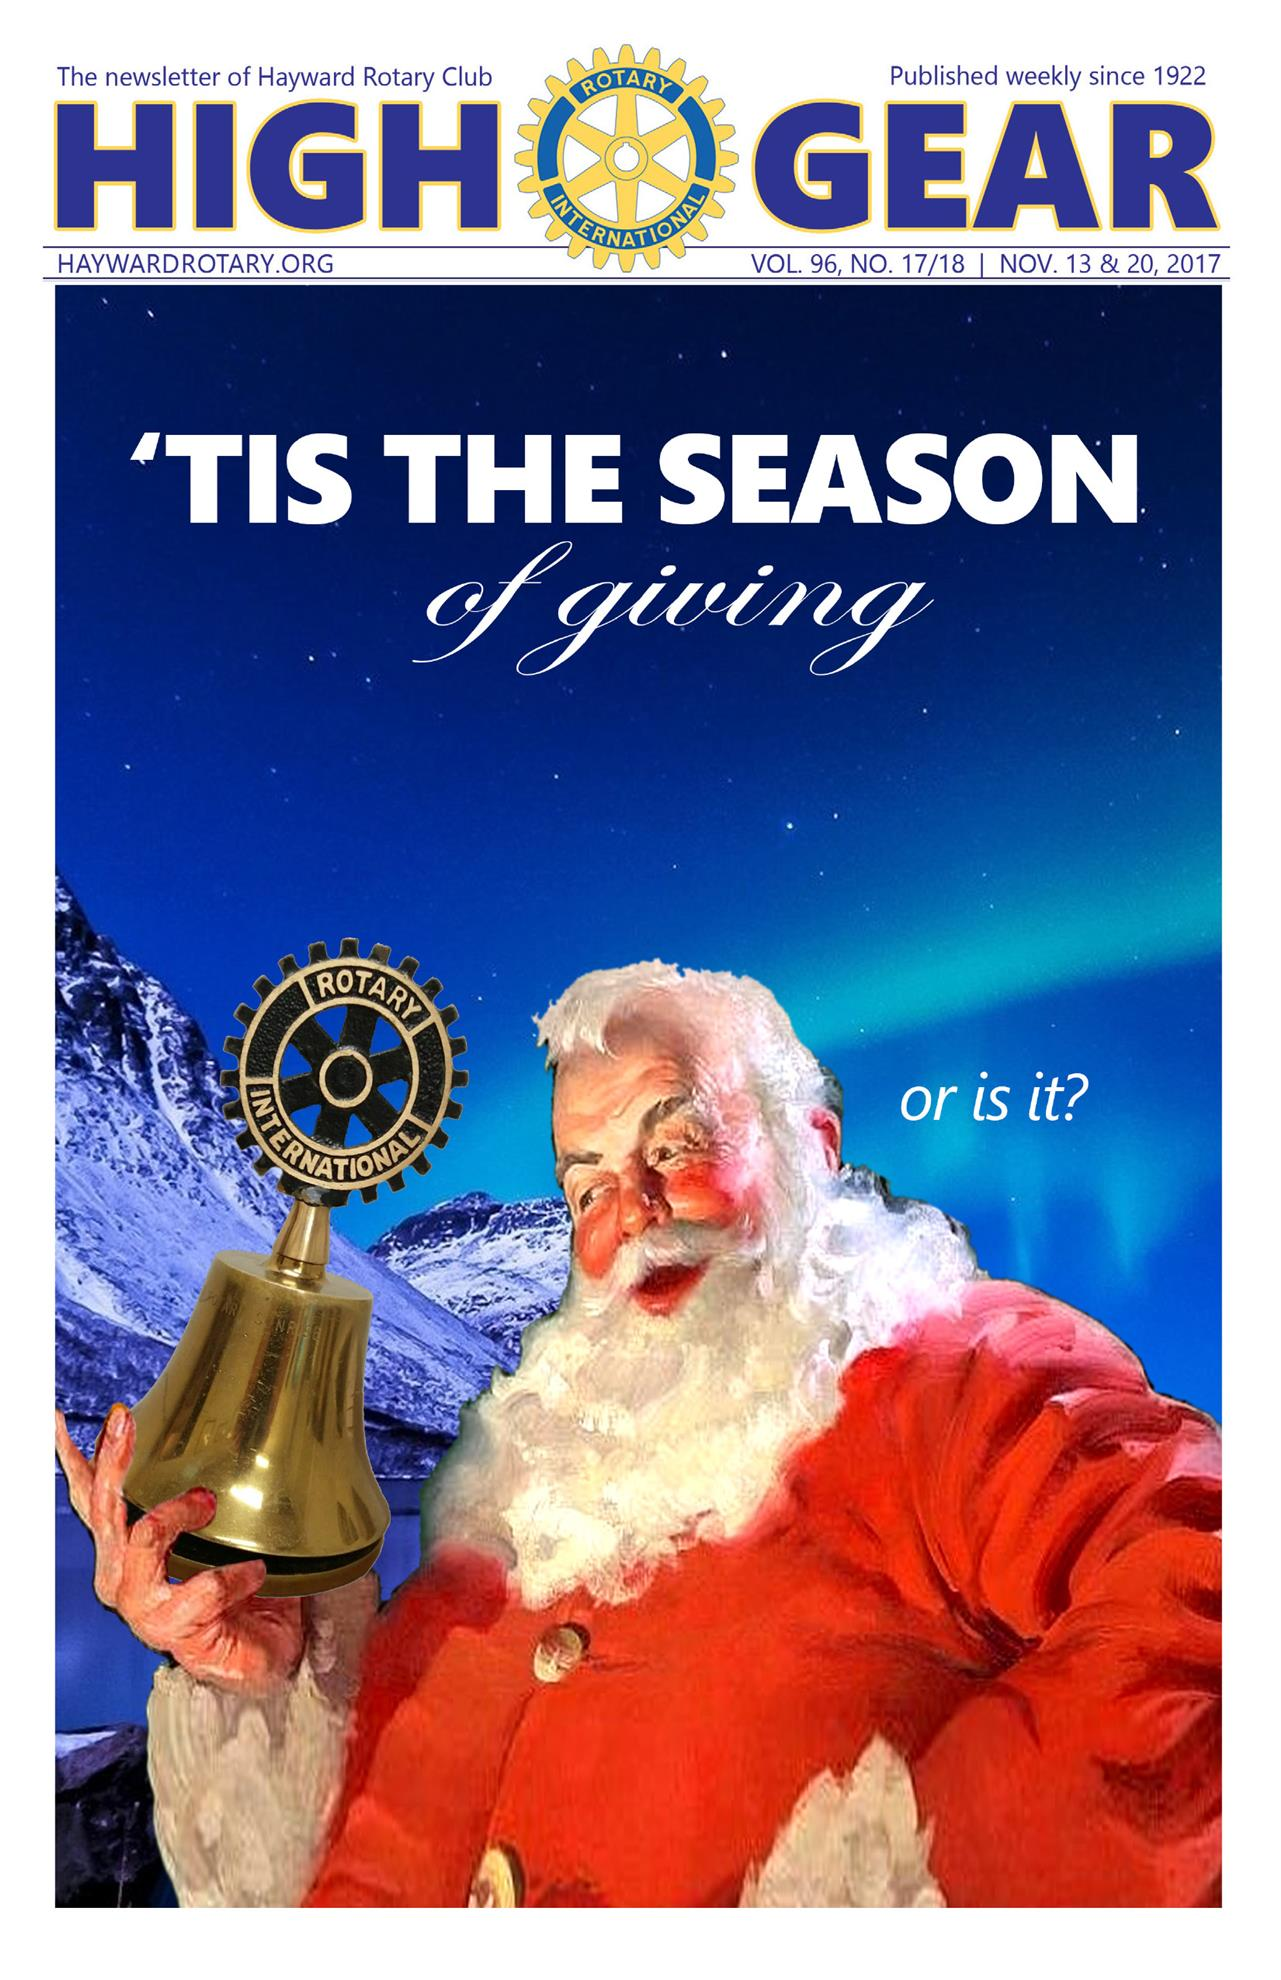 """November 13 & 20, 2017: """"'Tis the Season of Giving - Or is it?"""""""